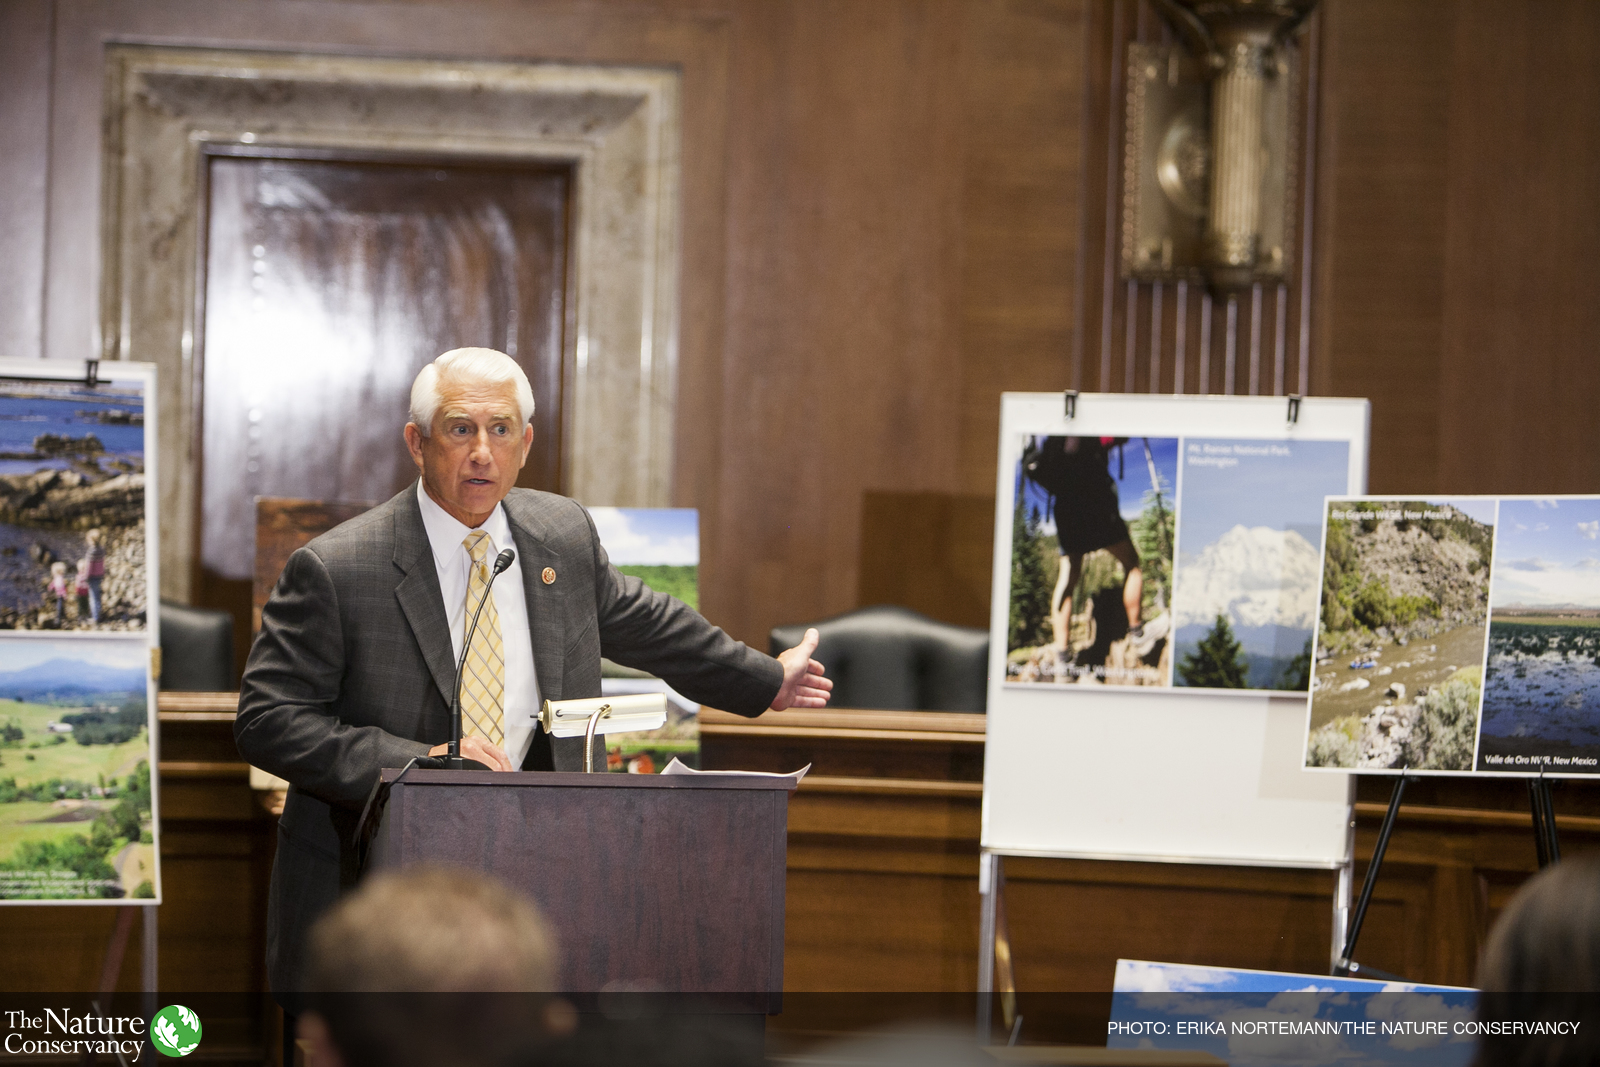 U.S. Rep. Dave Reichert speaks at a news conference celebrating the 50th Anniversary of the Land and Water Conservation Fund (LWCF) at the Dirksen Senate Office Building in Washington, D.C., in 2014.